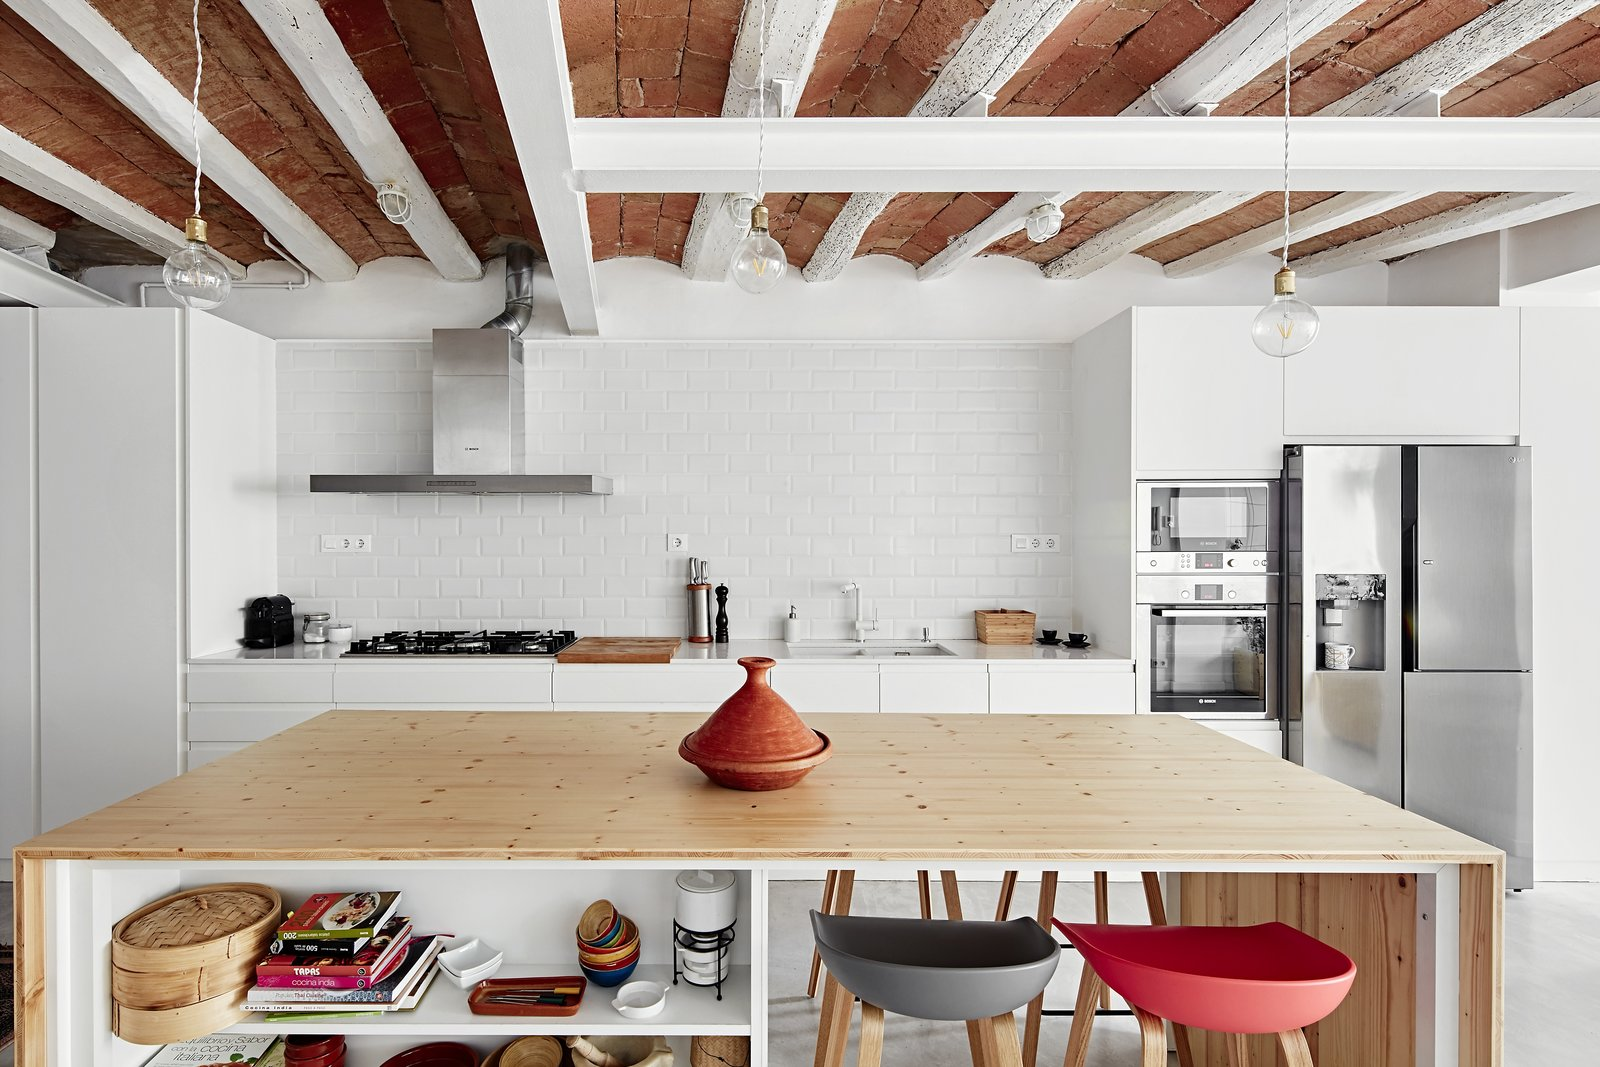 Kitchen, Microwave, Refrigerator, Wall Oven, Undermount, Range, Range Hood, White, Concrete, and Pendant  Best Kitchen Refrigerator Range Hood Undermount Pendant Concrete Photos from Can This Renovated, Loft-Like Home in Spain Be Any Dreamier?